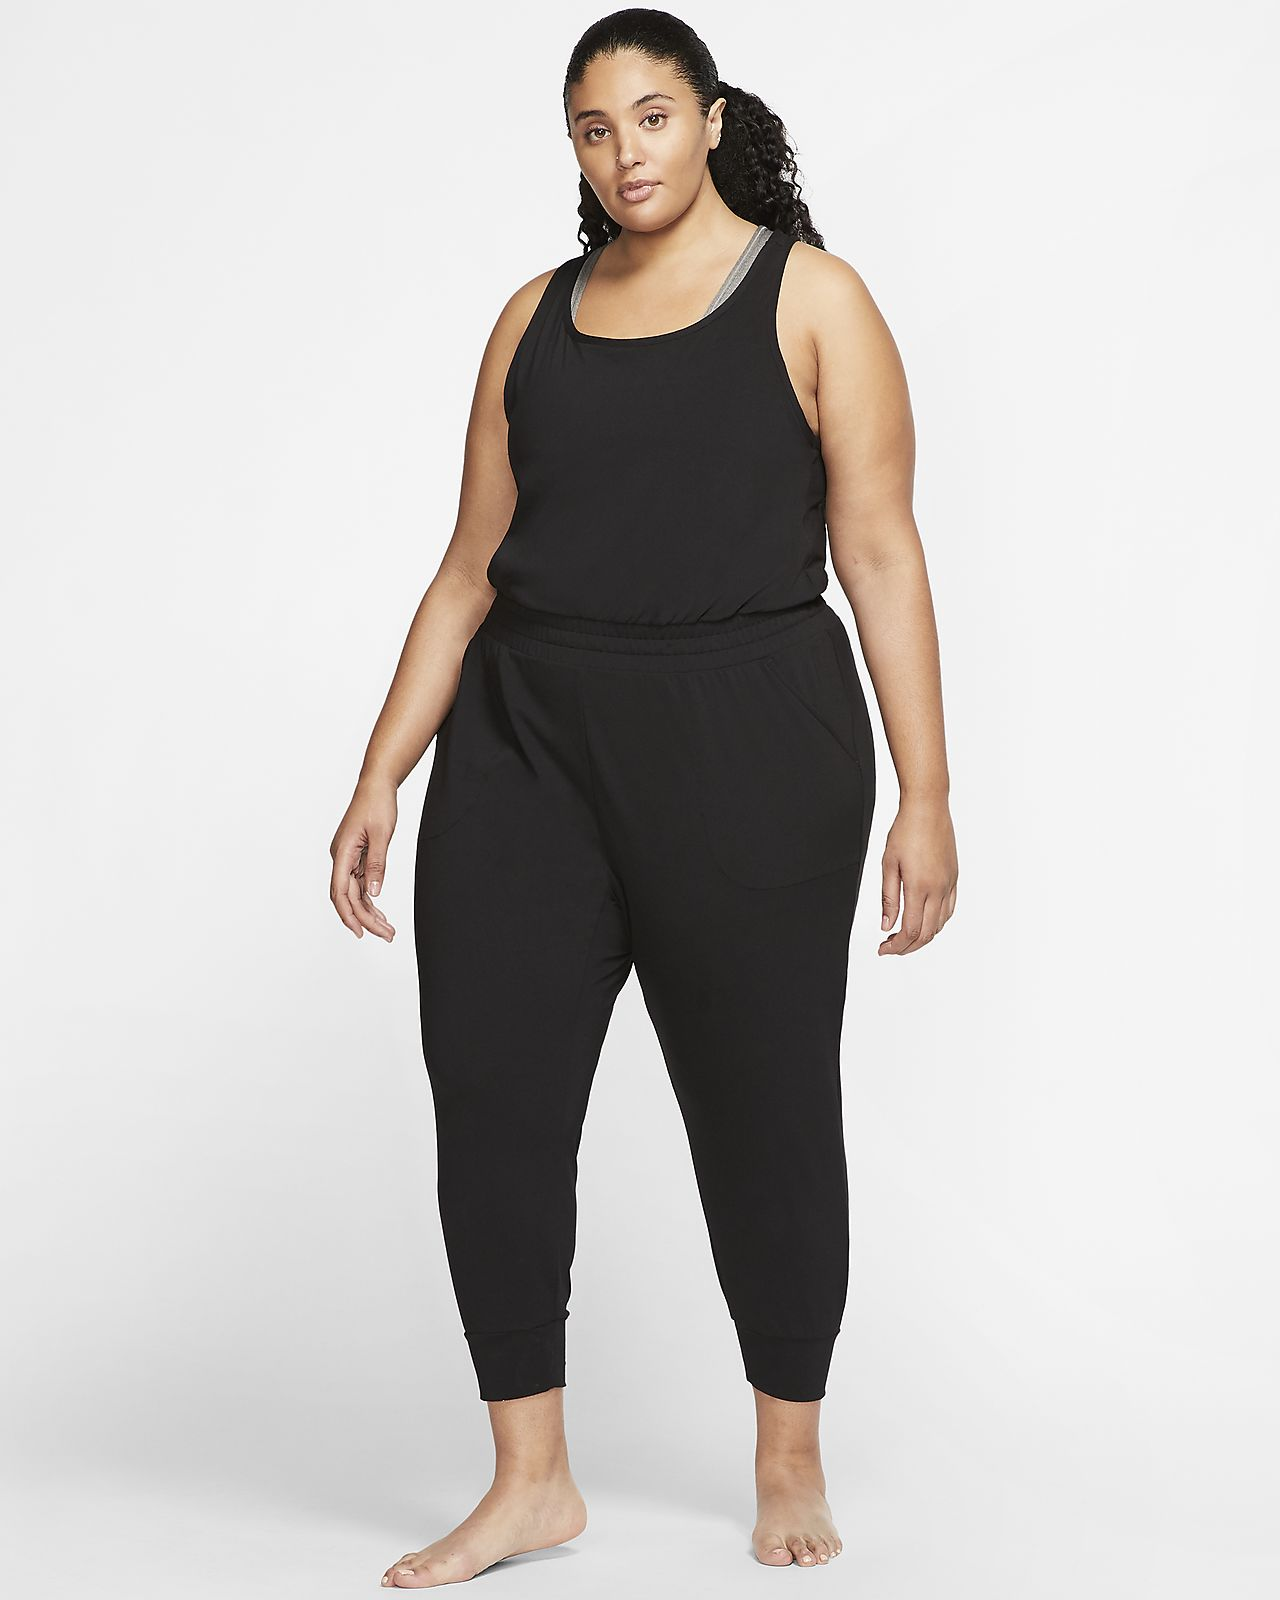 Nike Yoga Women's 7/8 Jumpsuit (Plus Size)